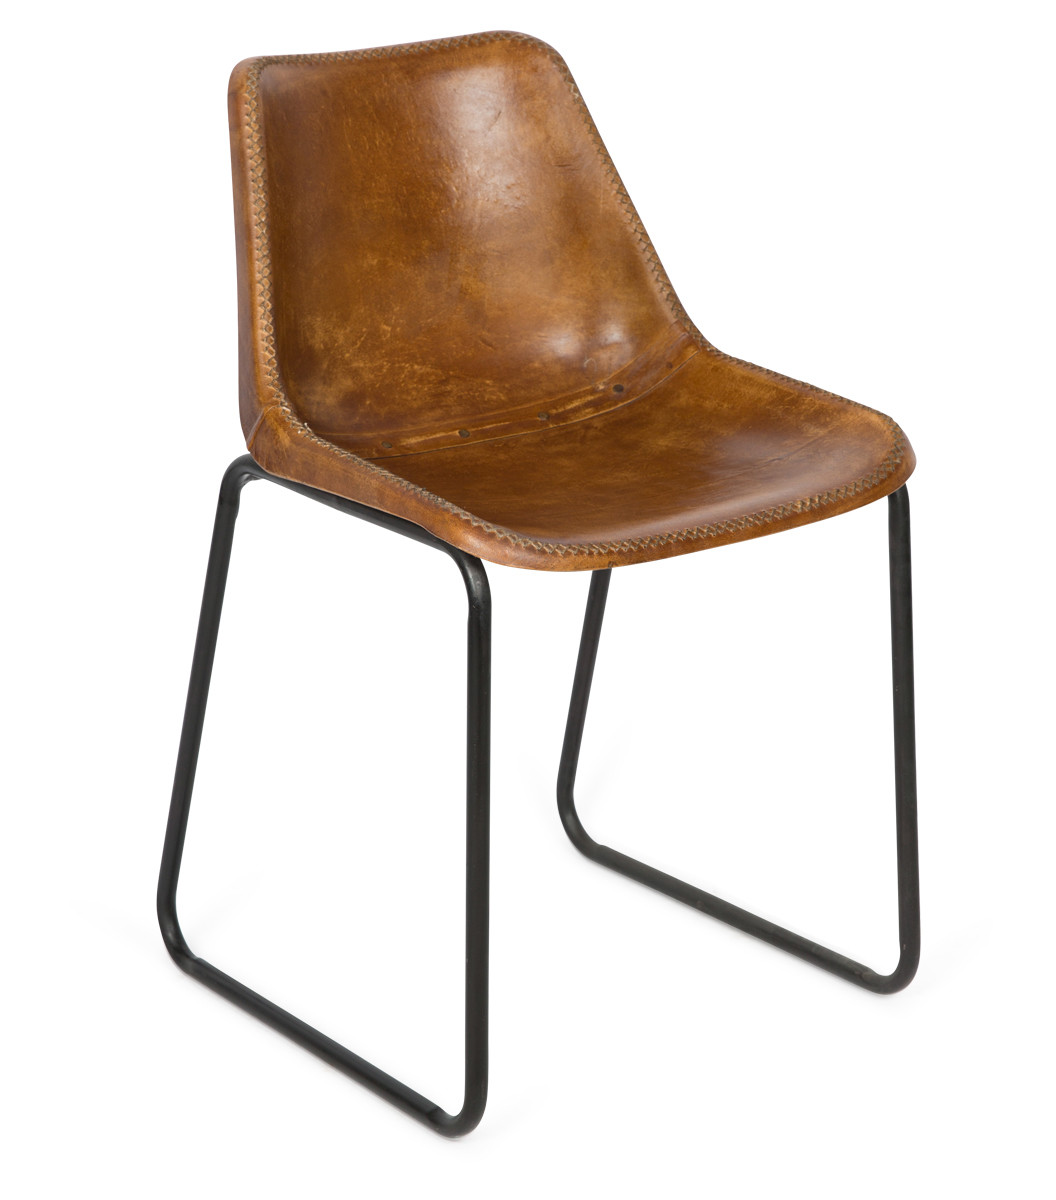 Vintage Aged Leather Dining Chair